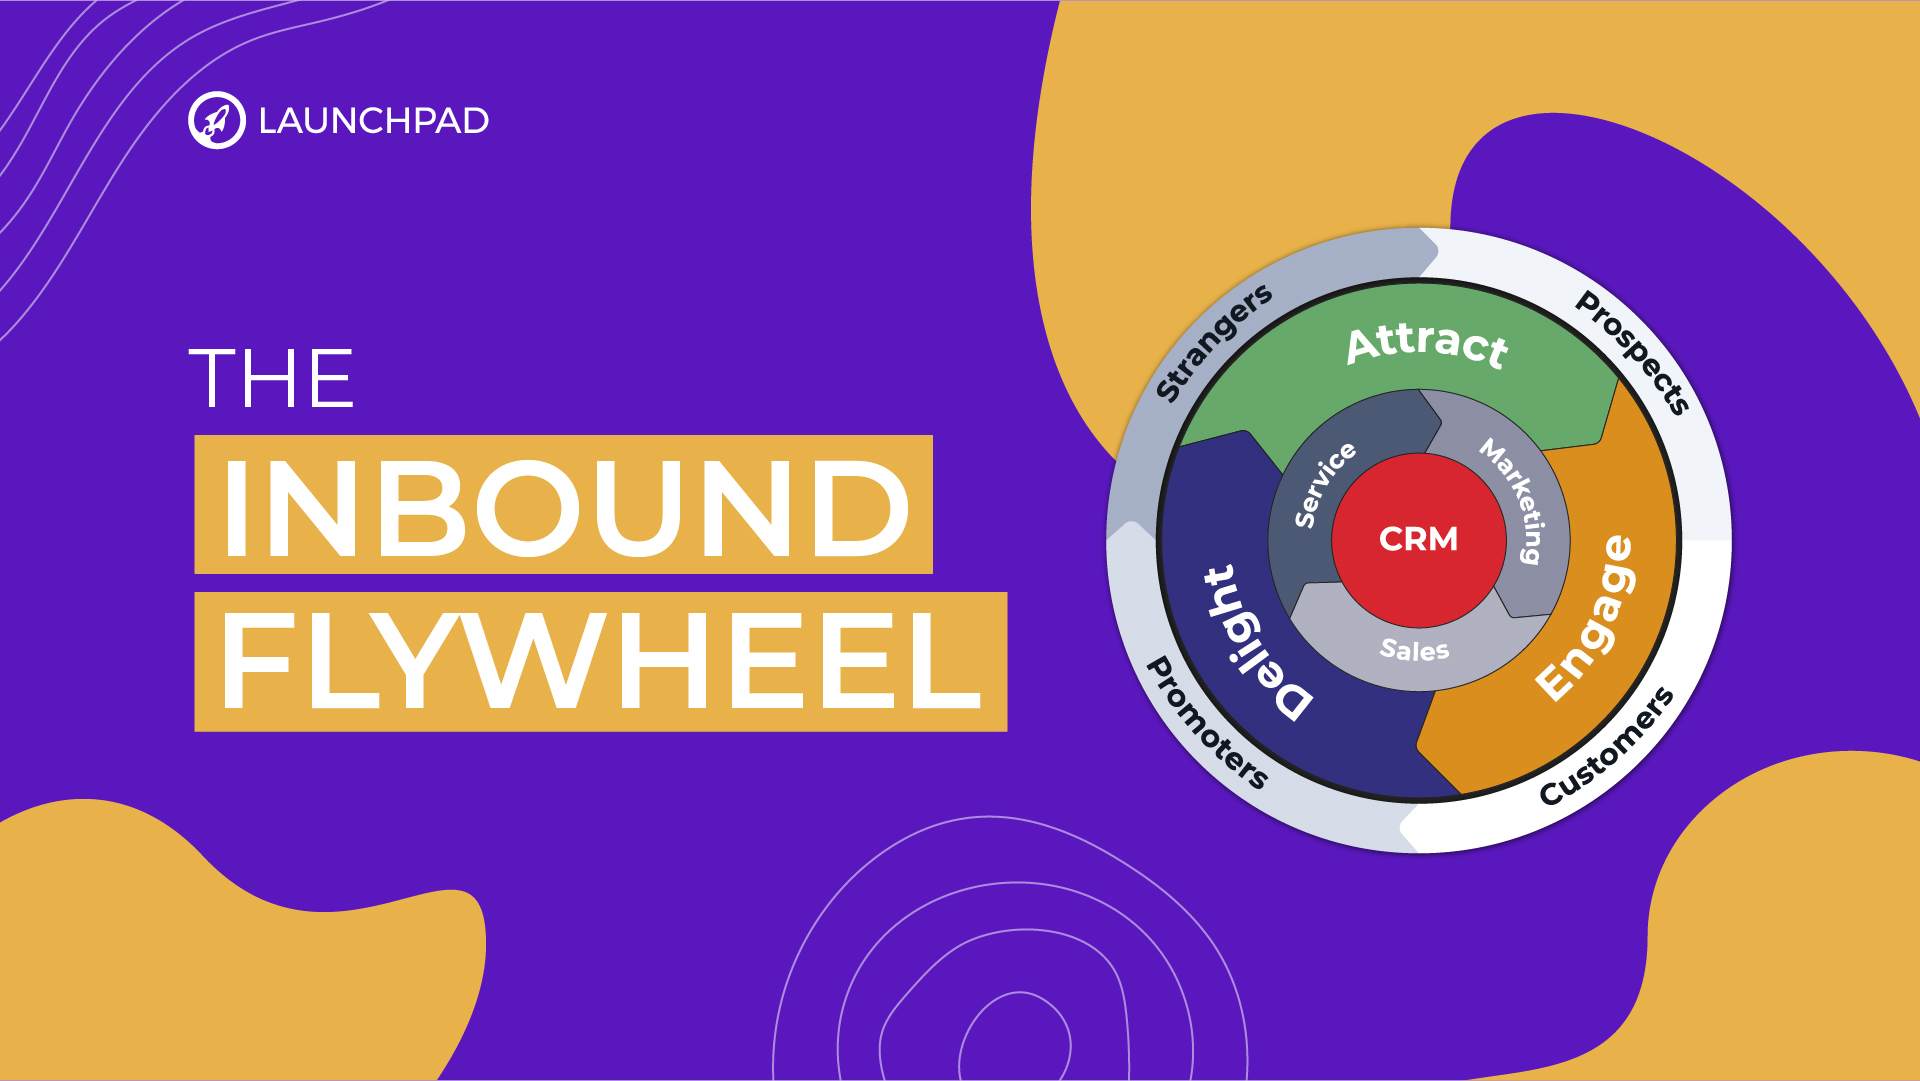 The Inbound Flywheel